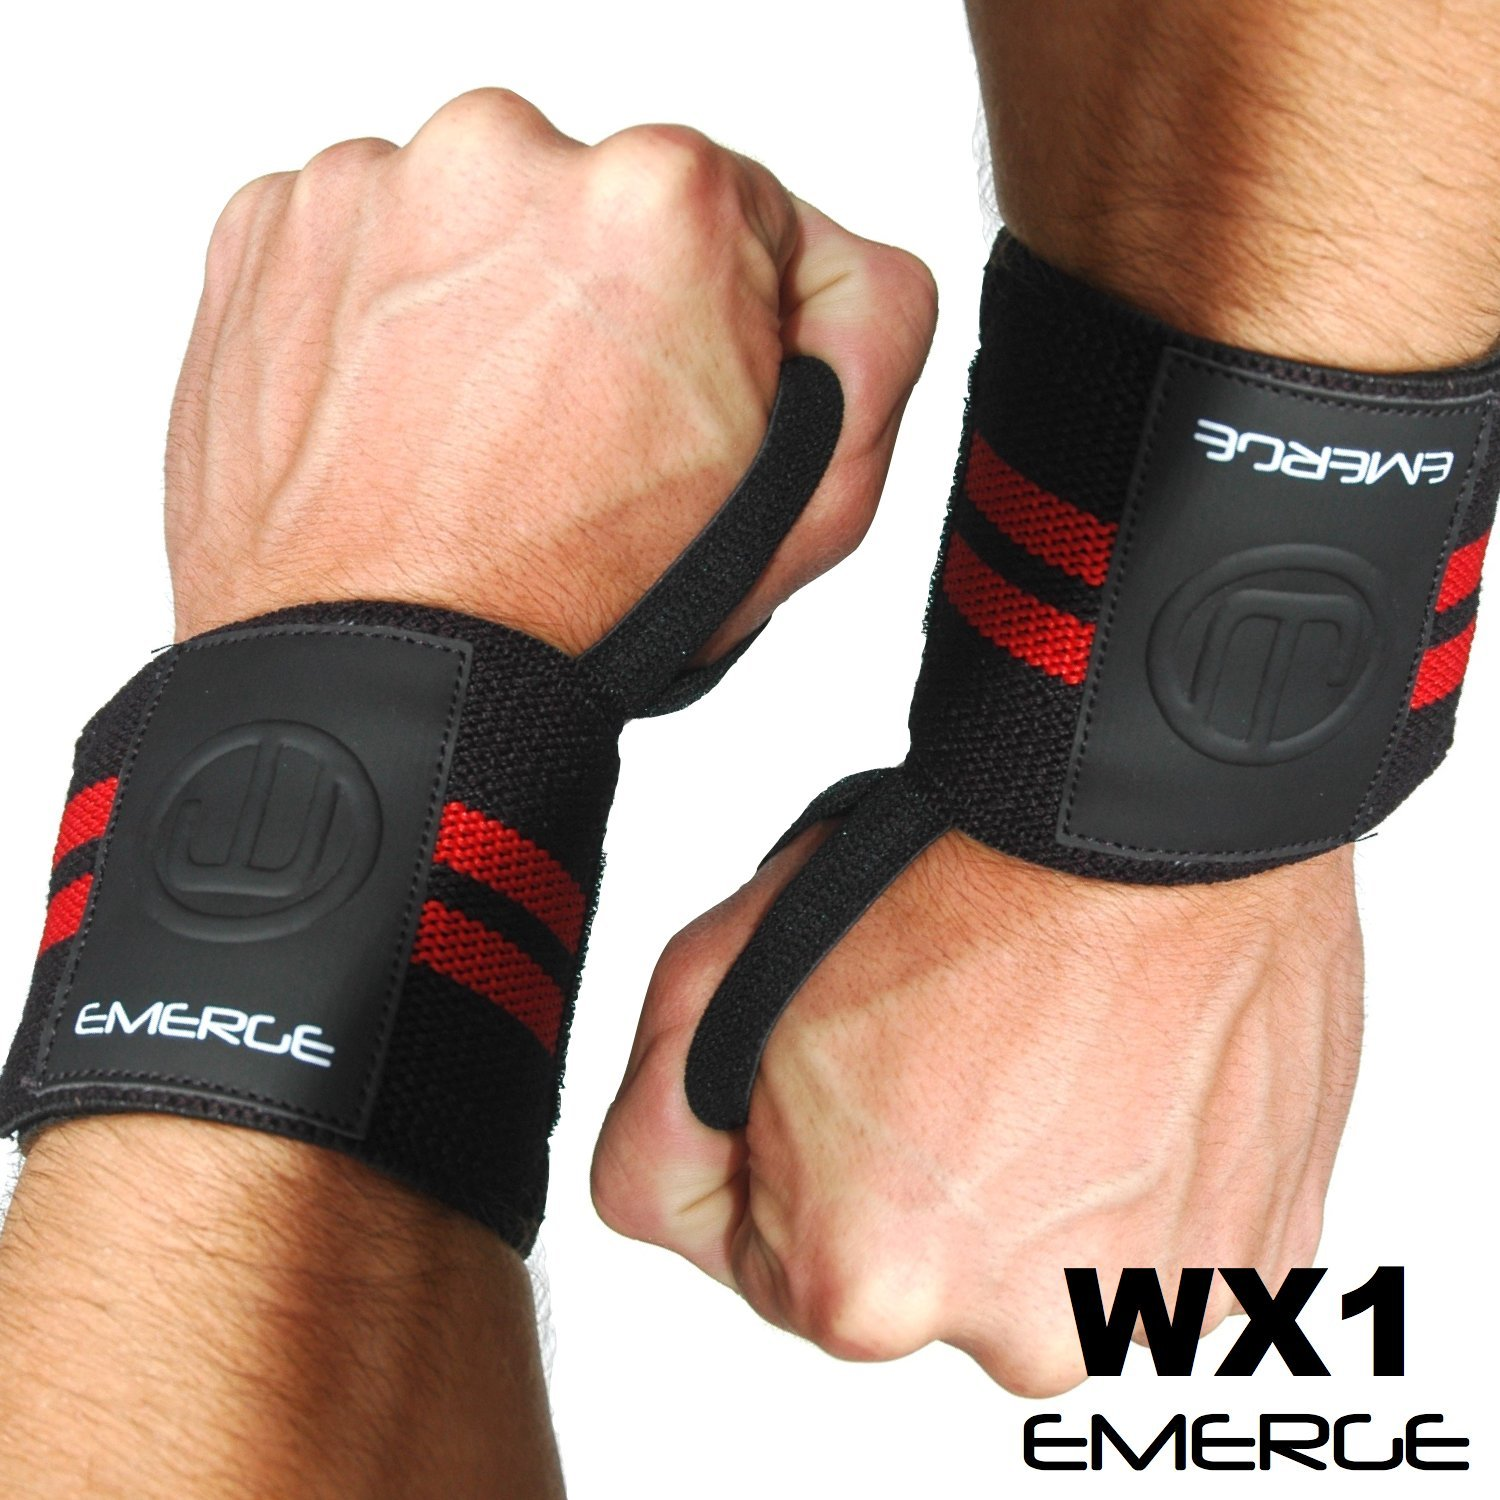 Emerge Fitness Wrist Wraps